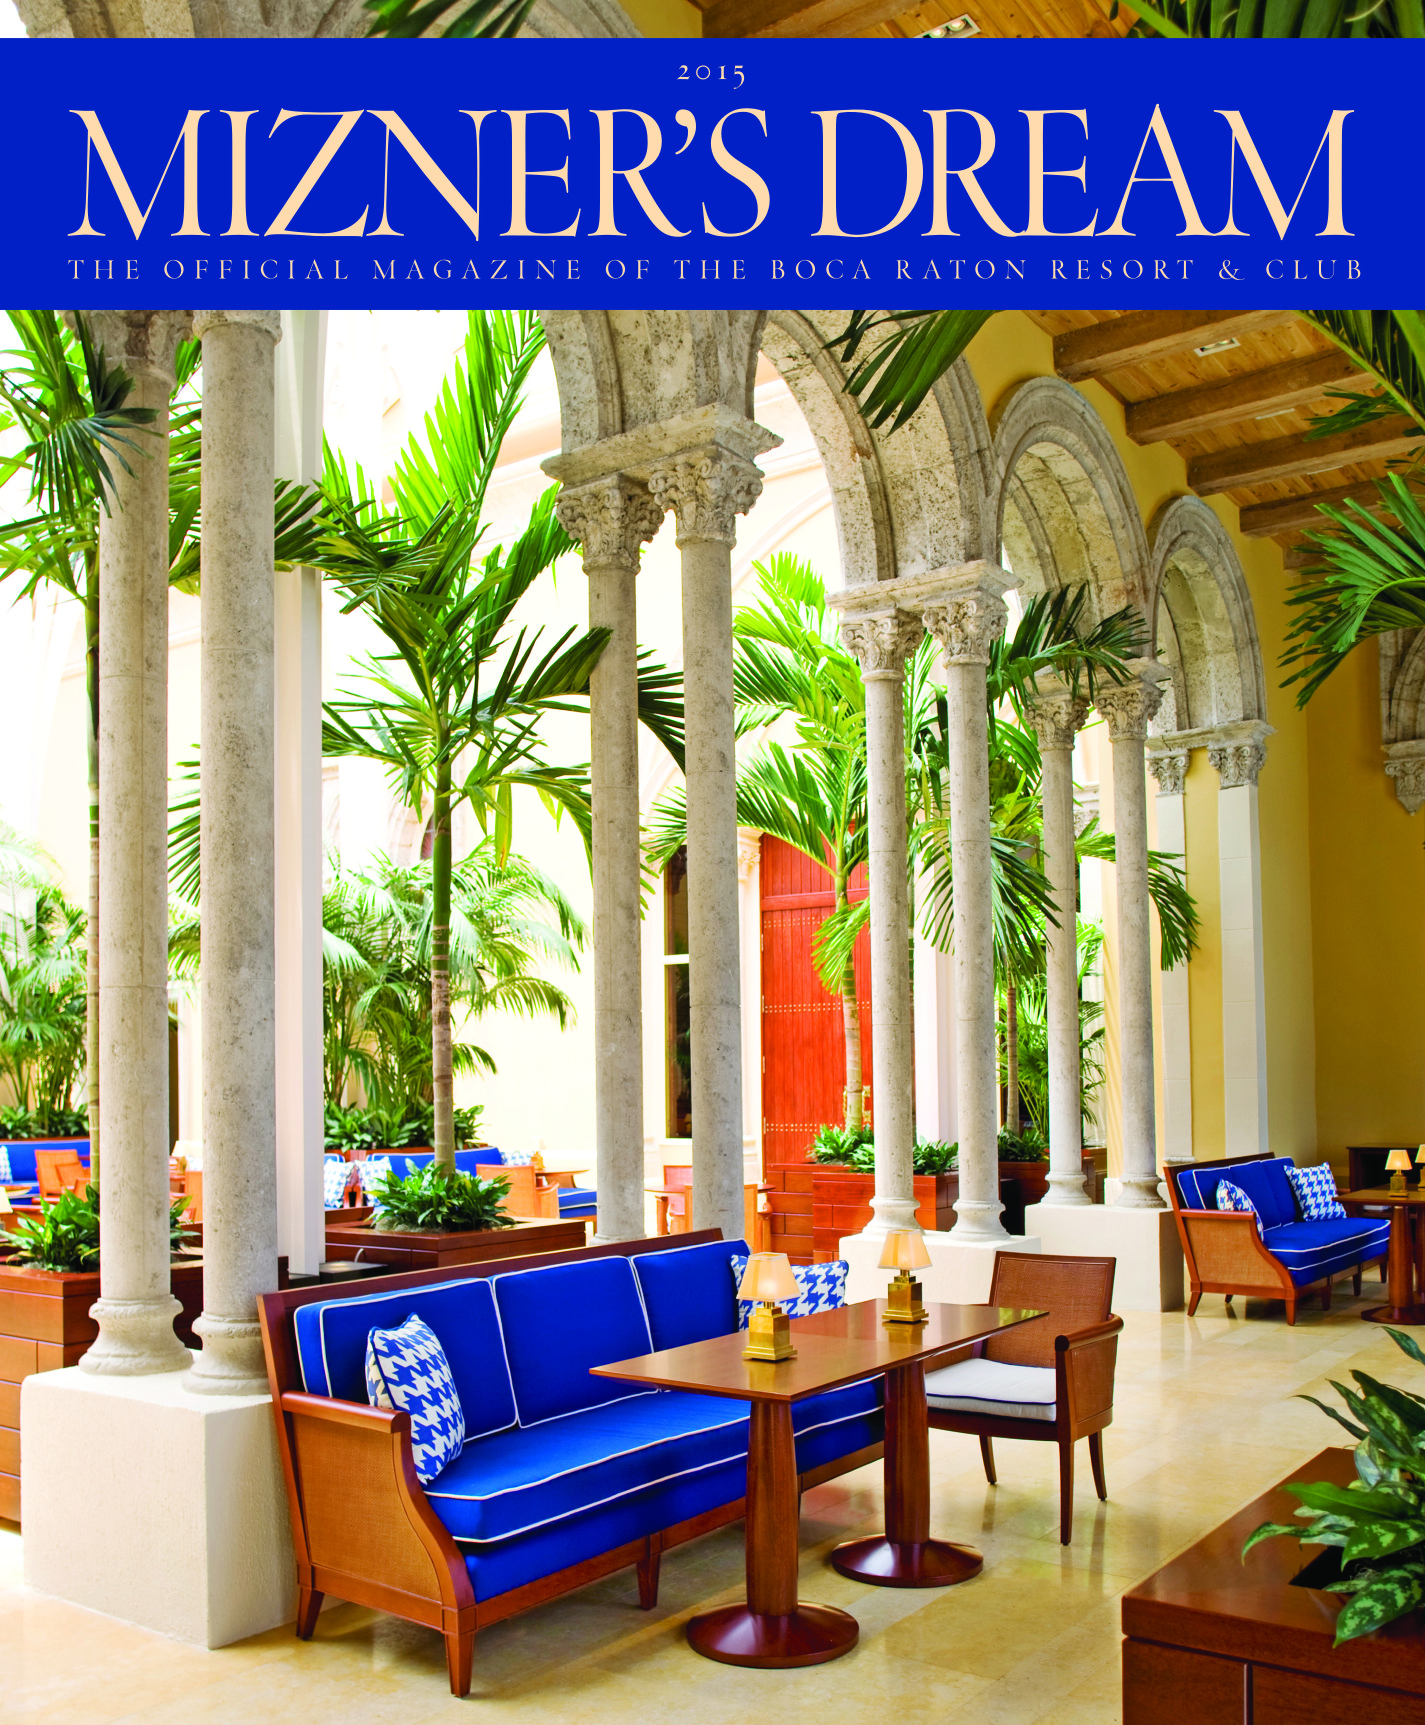 Mizners Dream Magazine